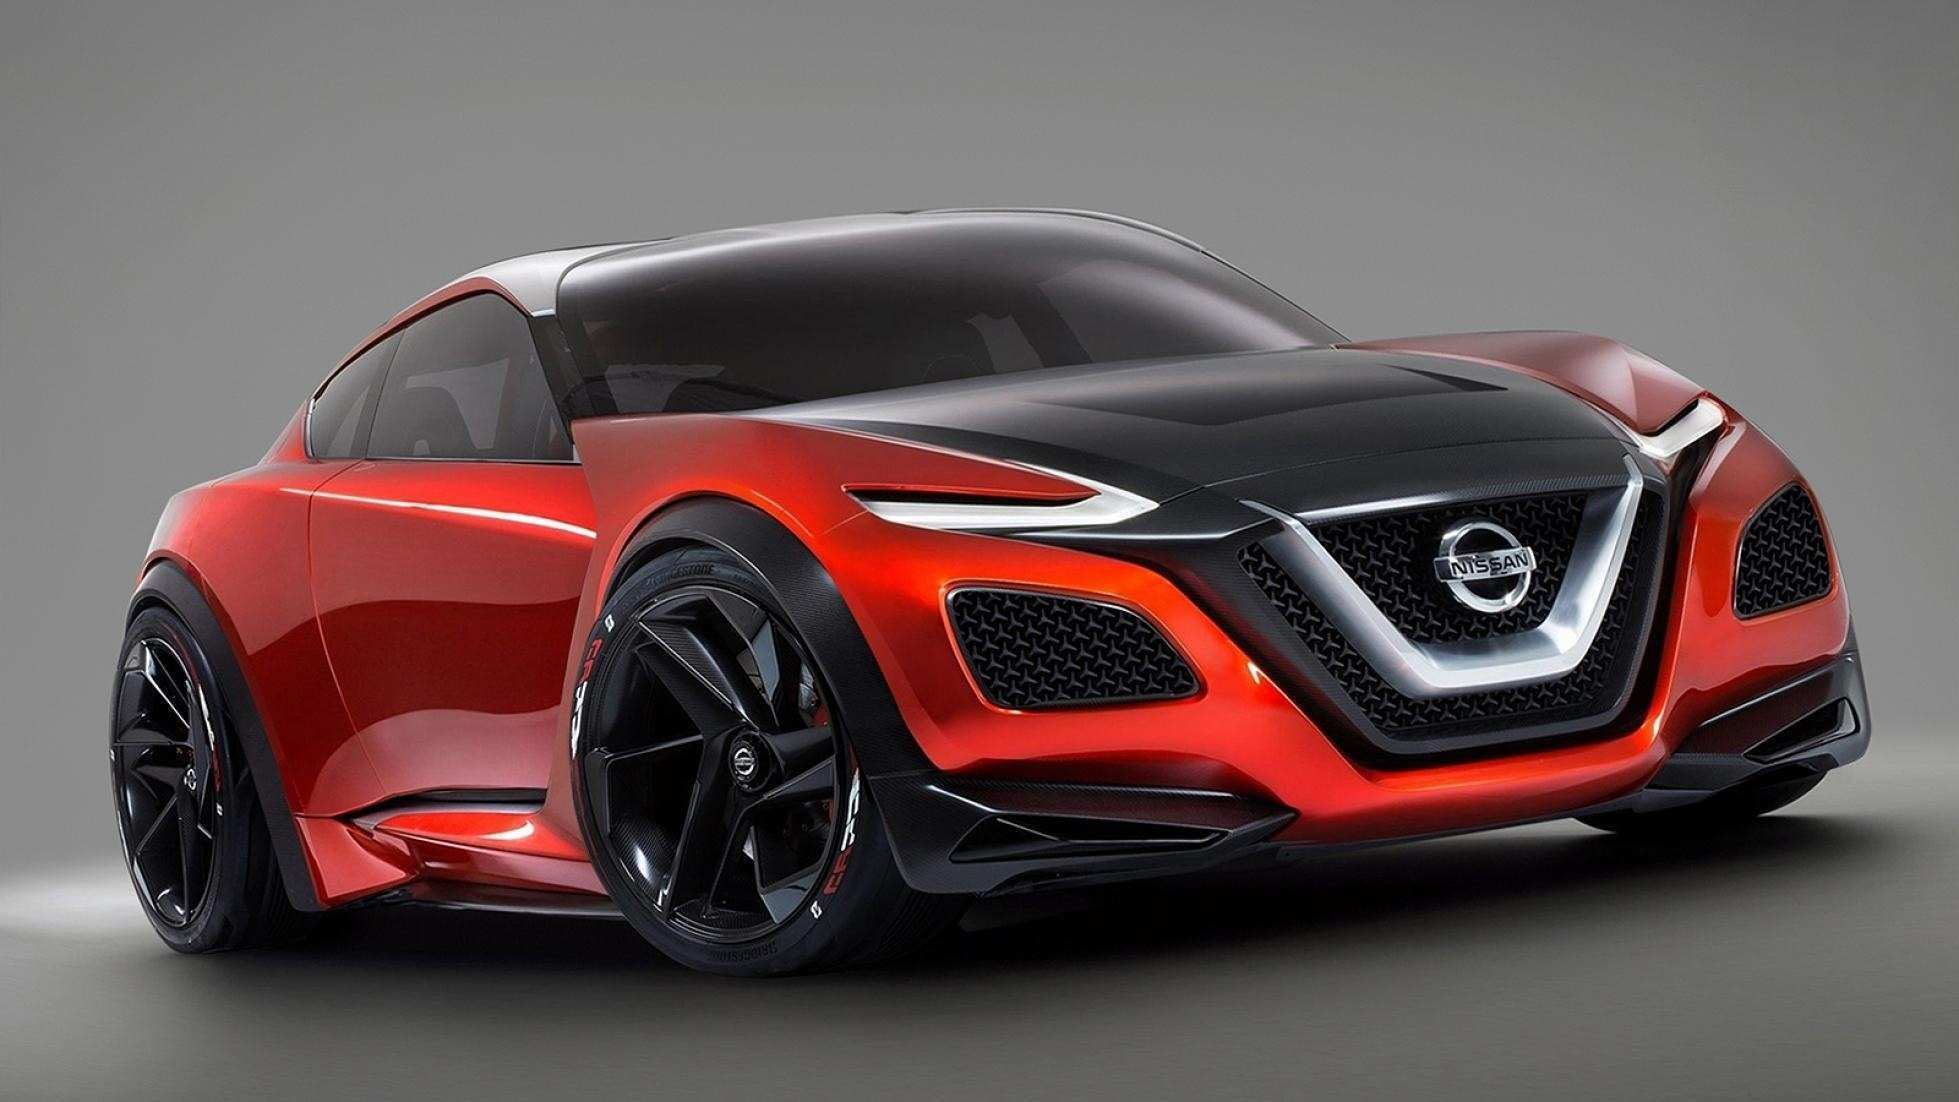 47 Gallery of Nissan Nismo 2020 Prices by Nissan Nismo 2020